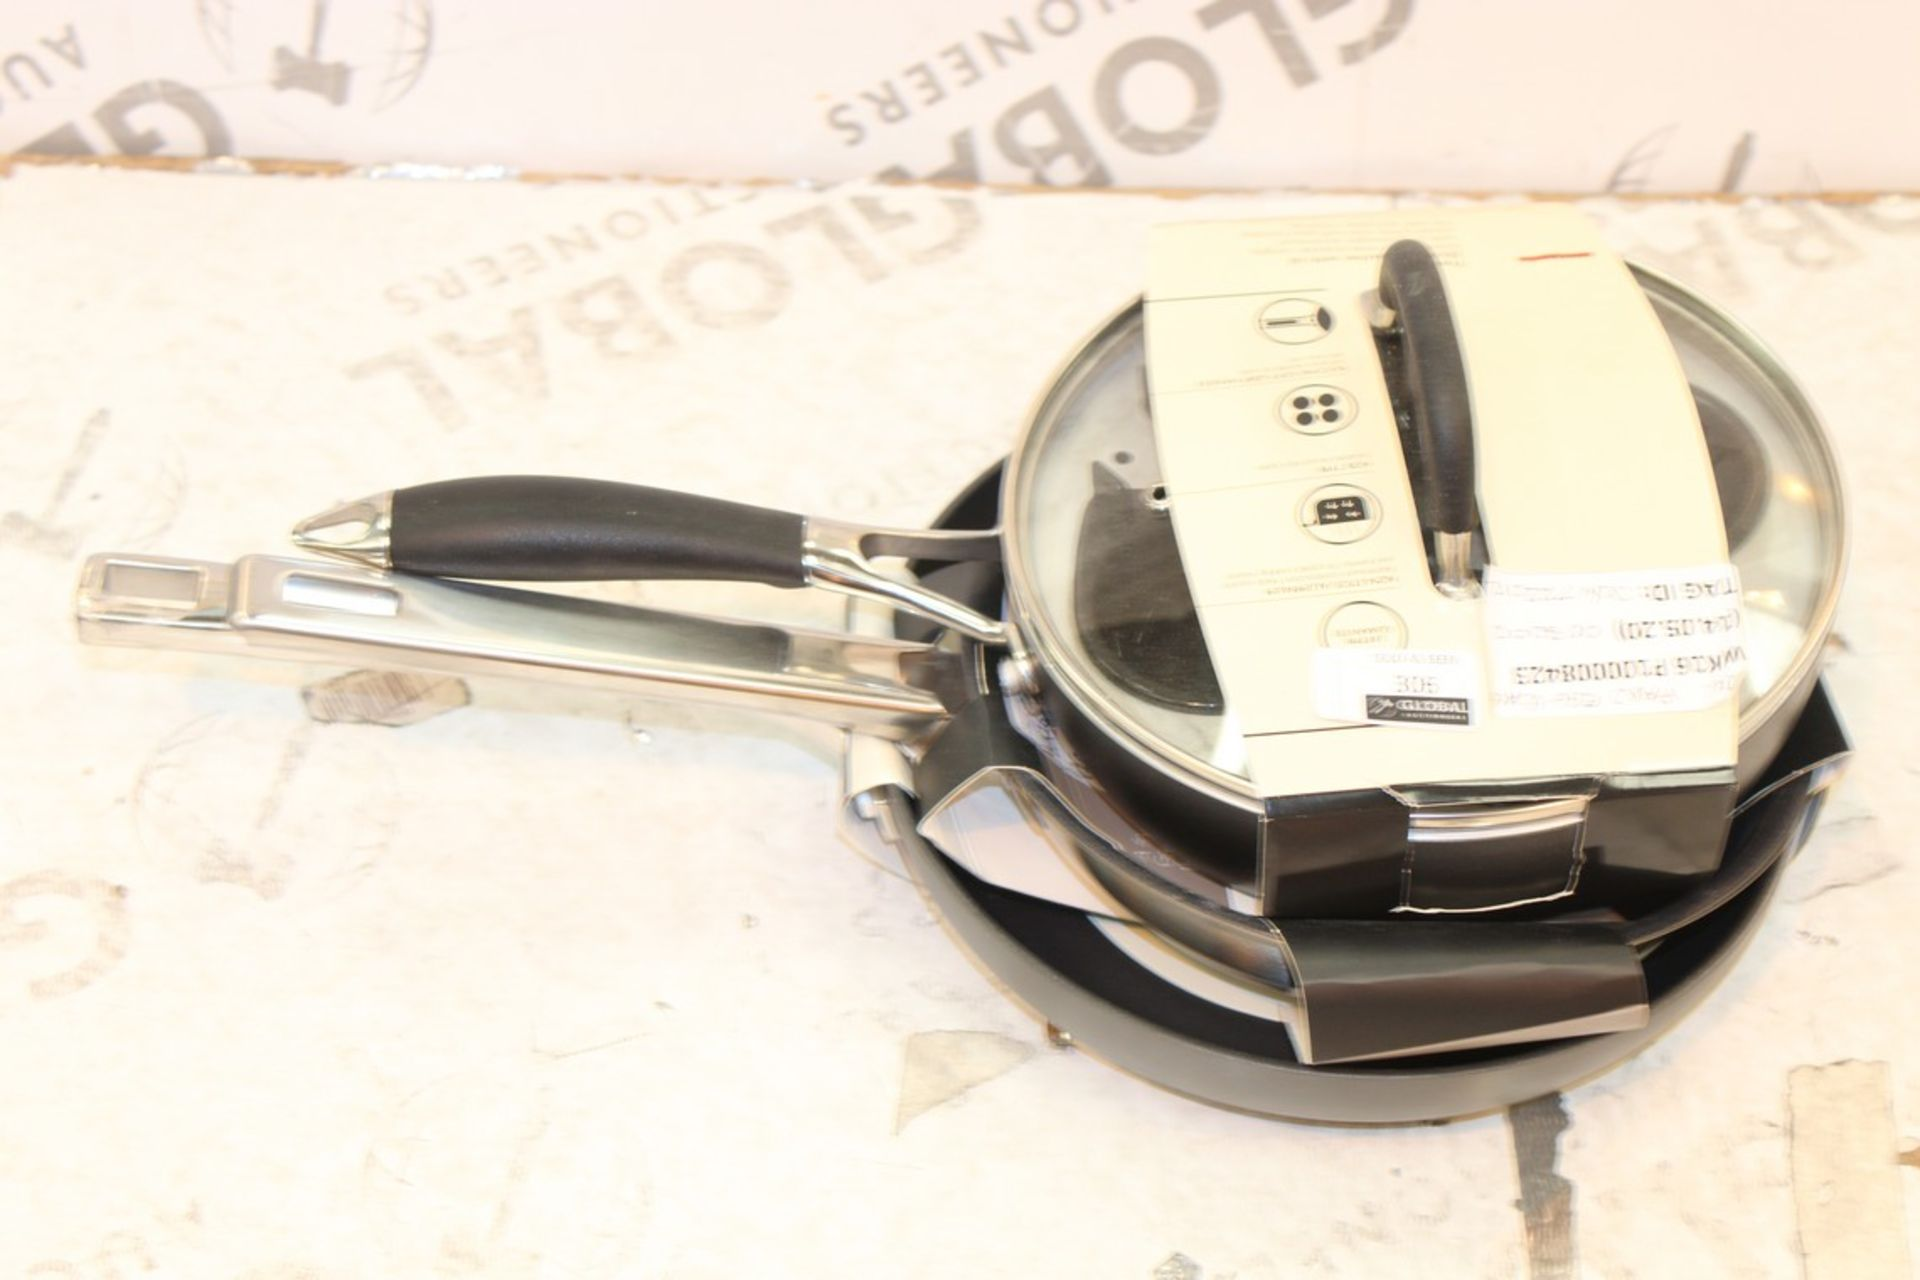 Lot 306 - Assorted Classic Steel Non Stick Frying Pans Large Non Stick Frying Pans And Egg Poaching Pans